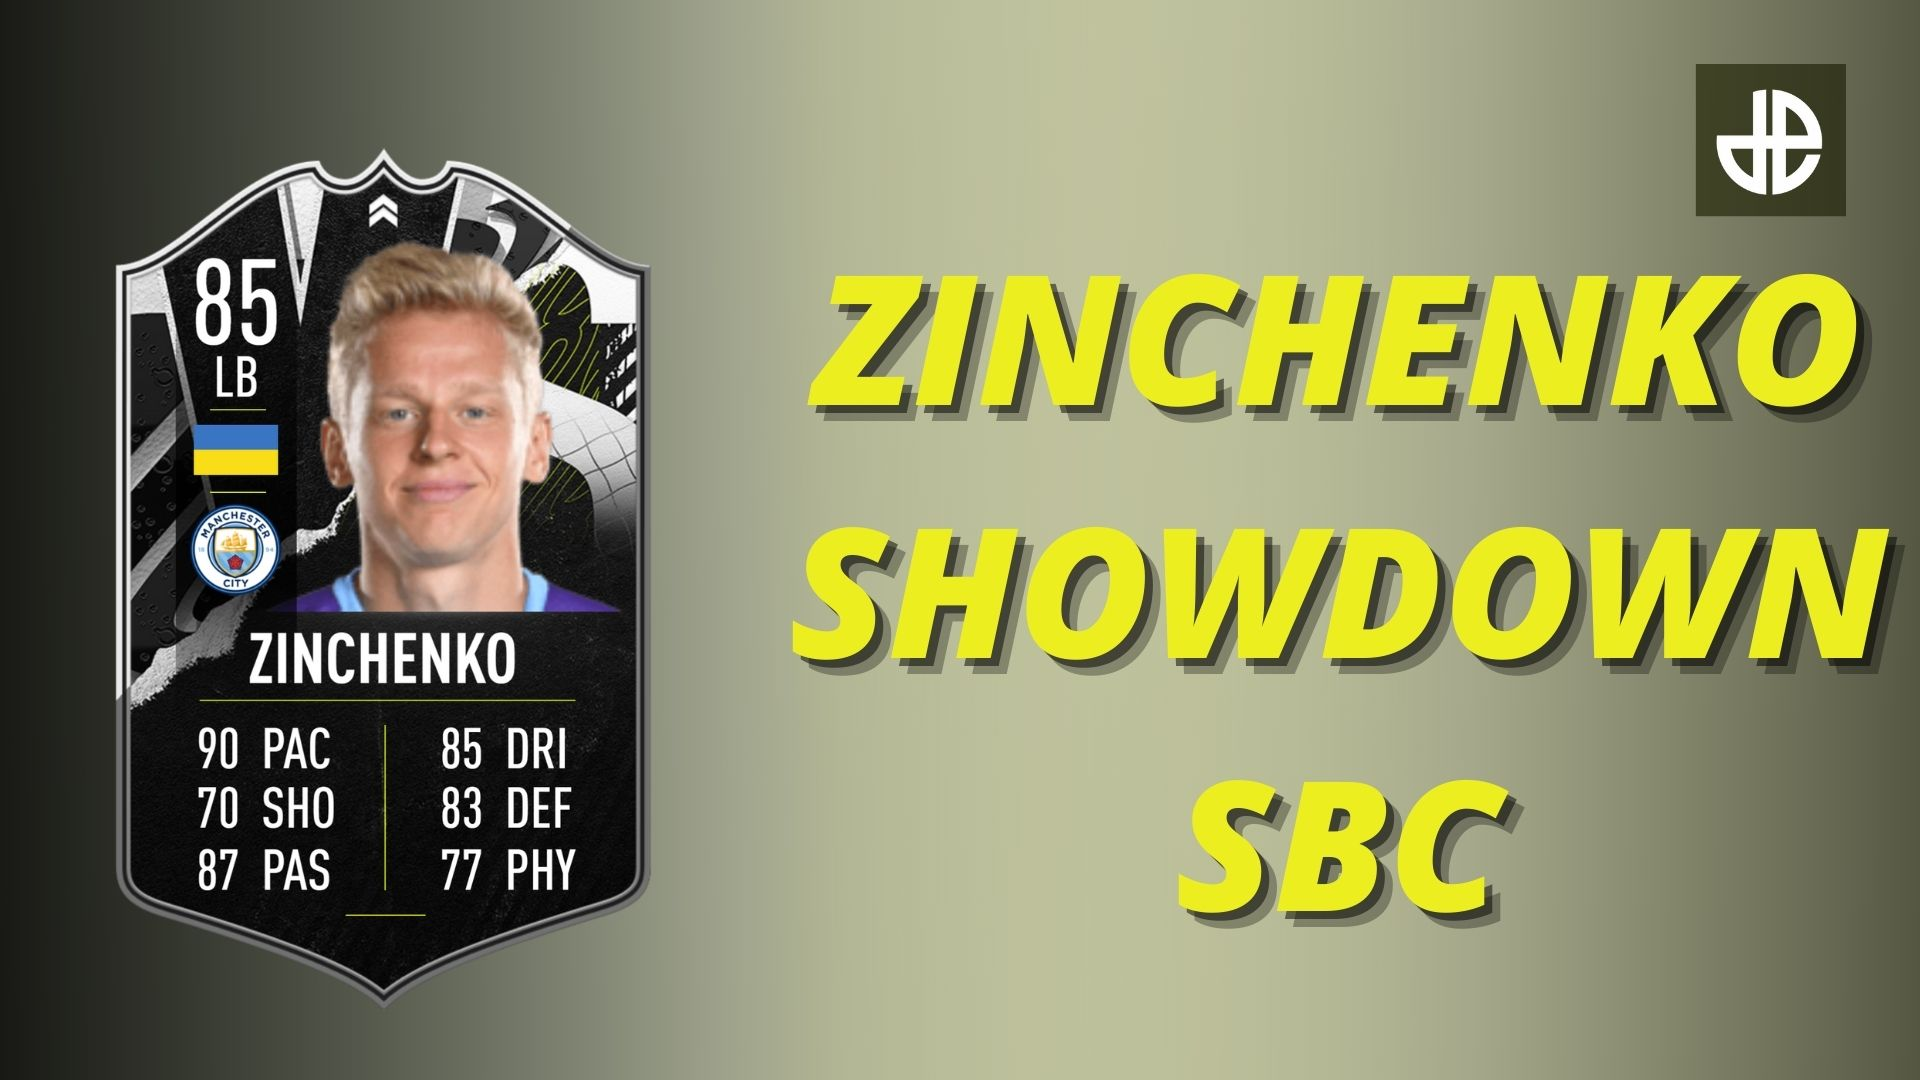 Zinchenko showdown SBC card in FIFA 21